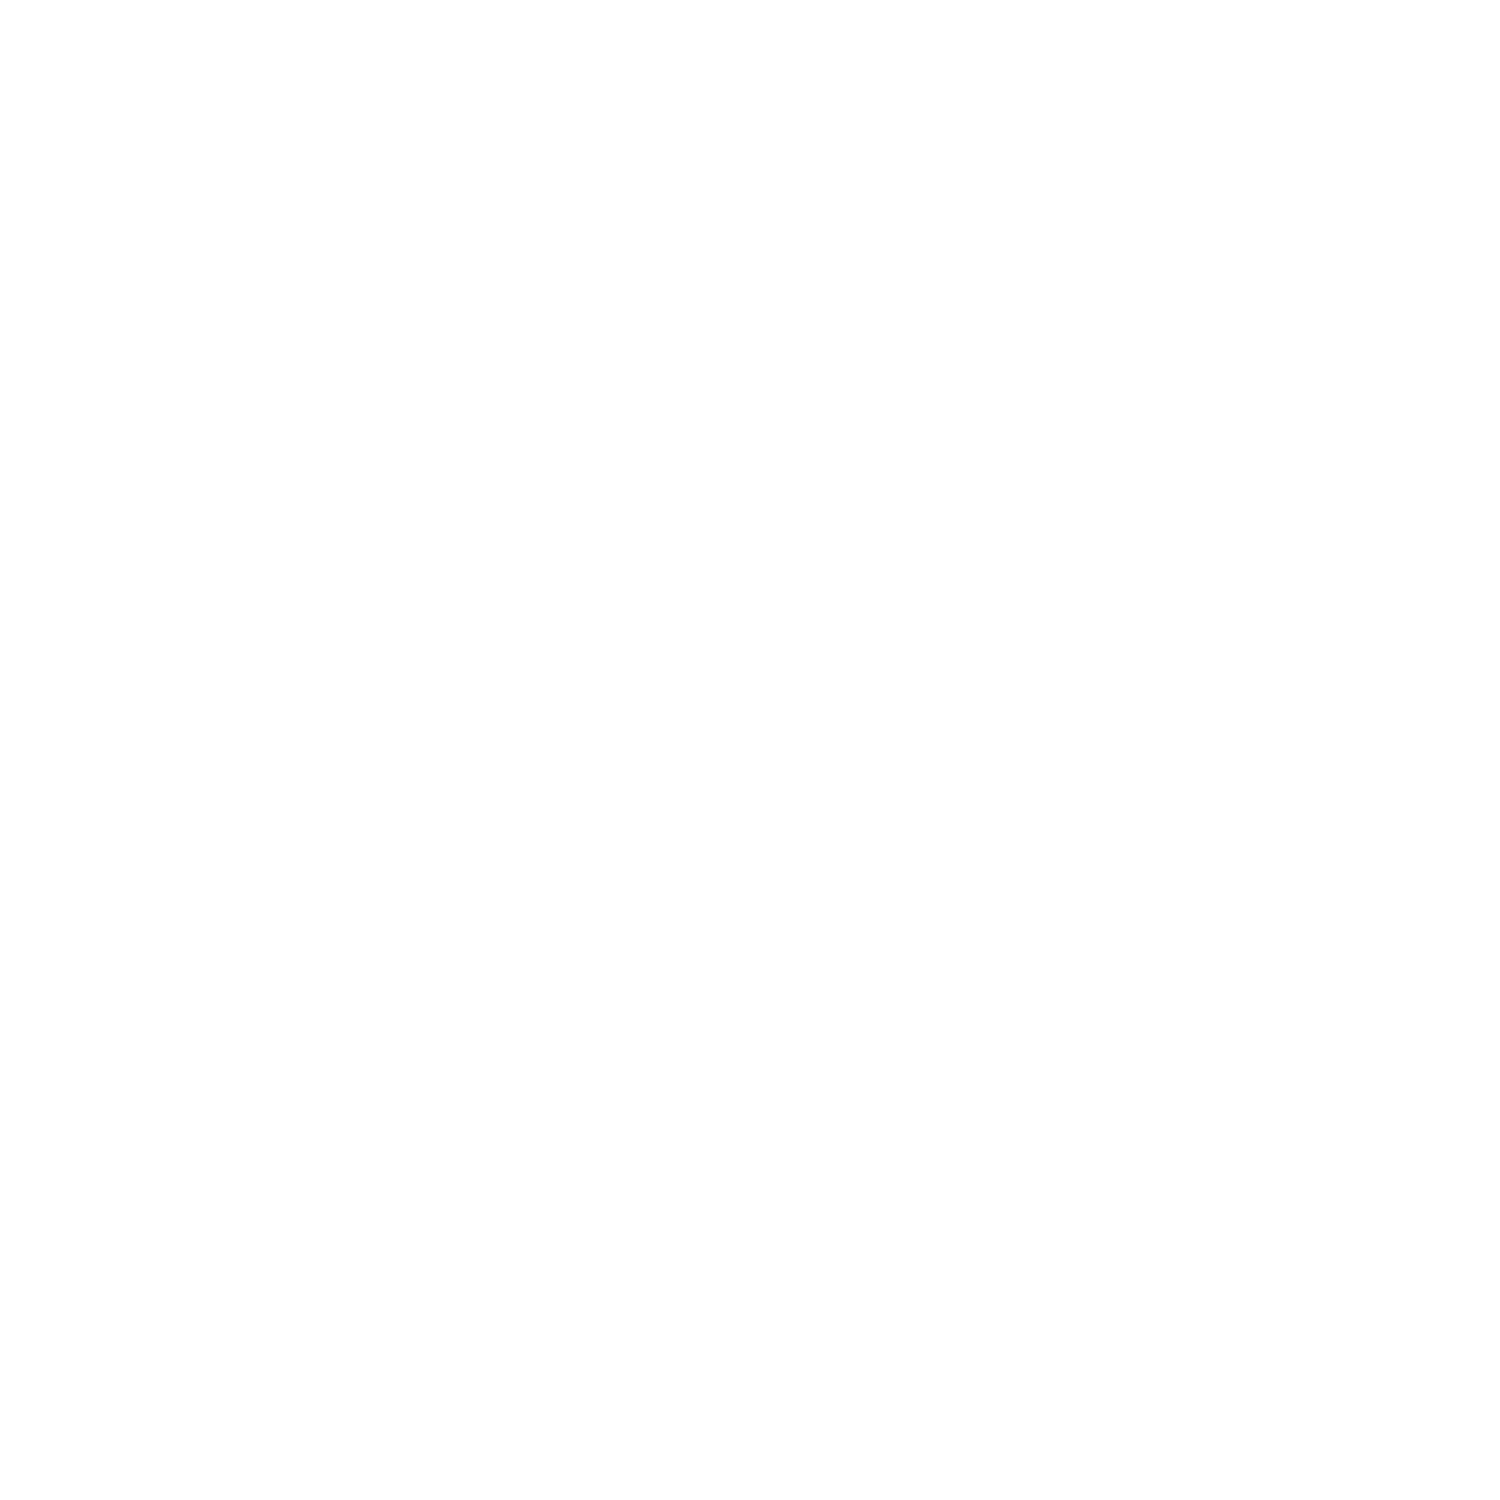 Wildthing Flyfishing